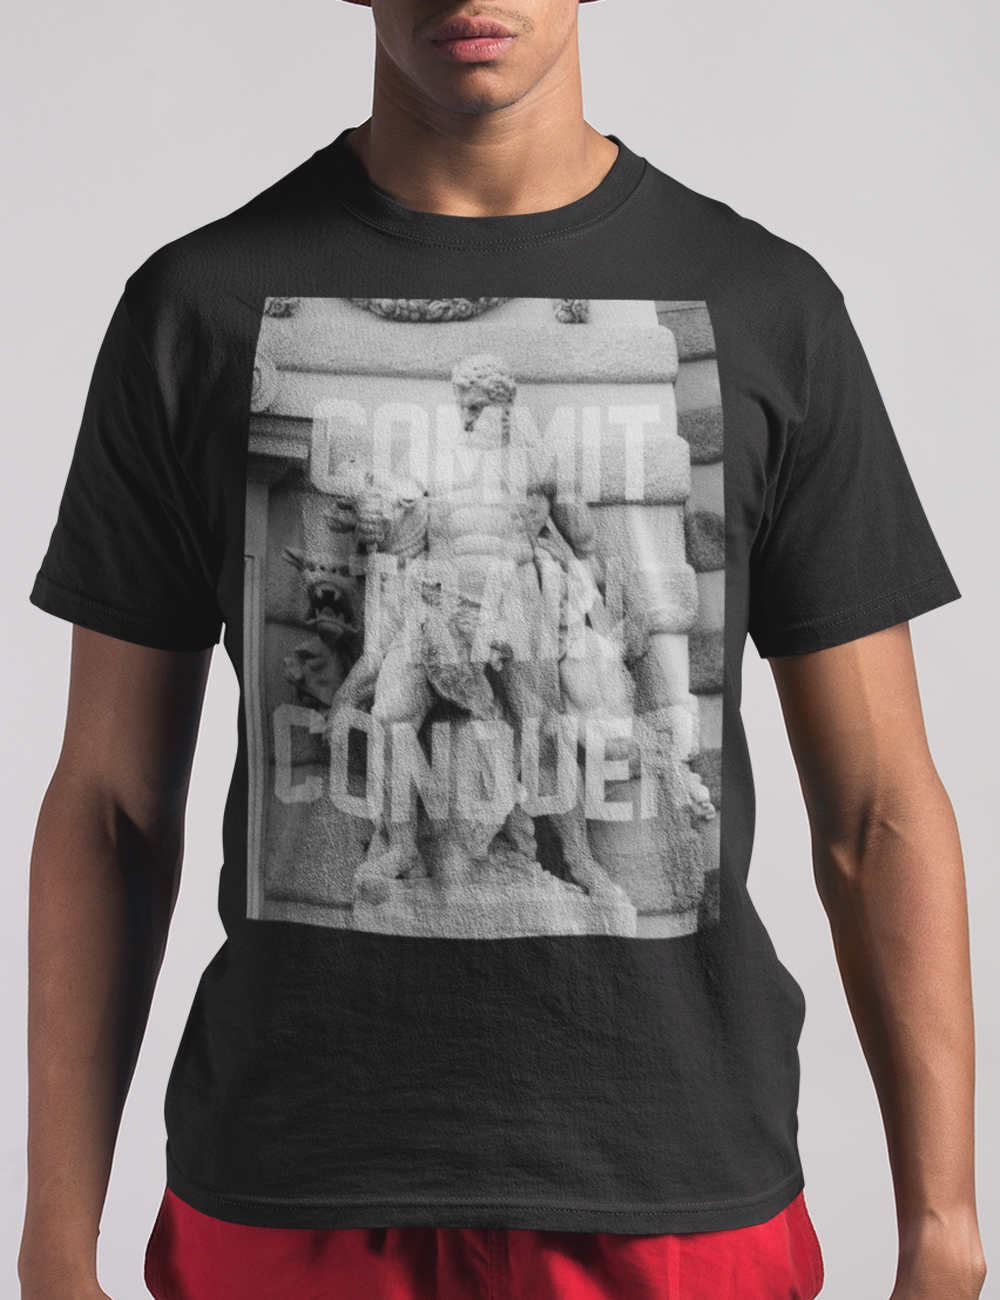 Commit. Train. Conquer. | T-Shirt